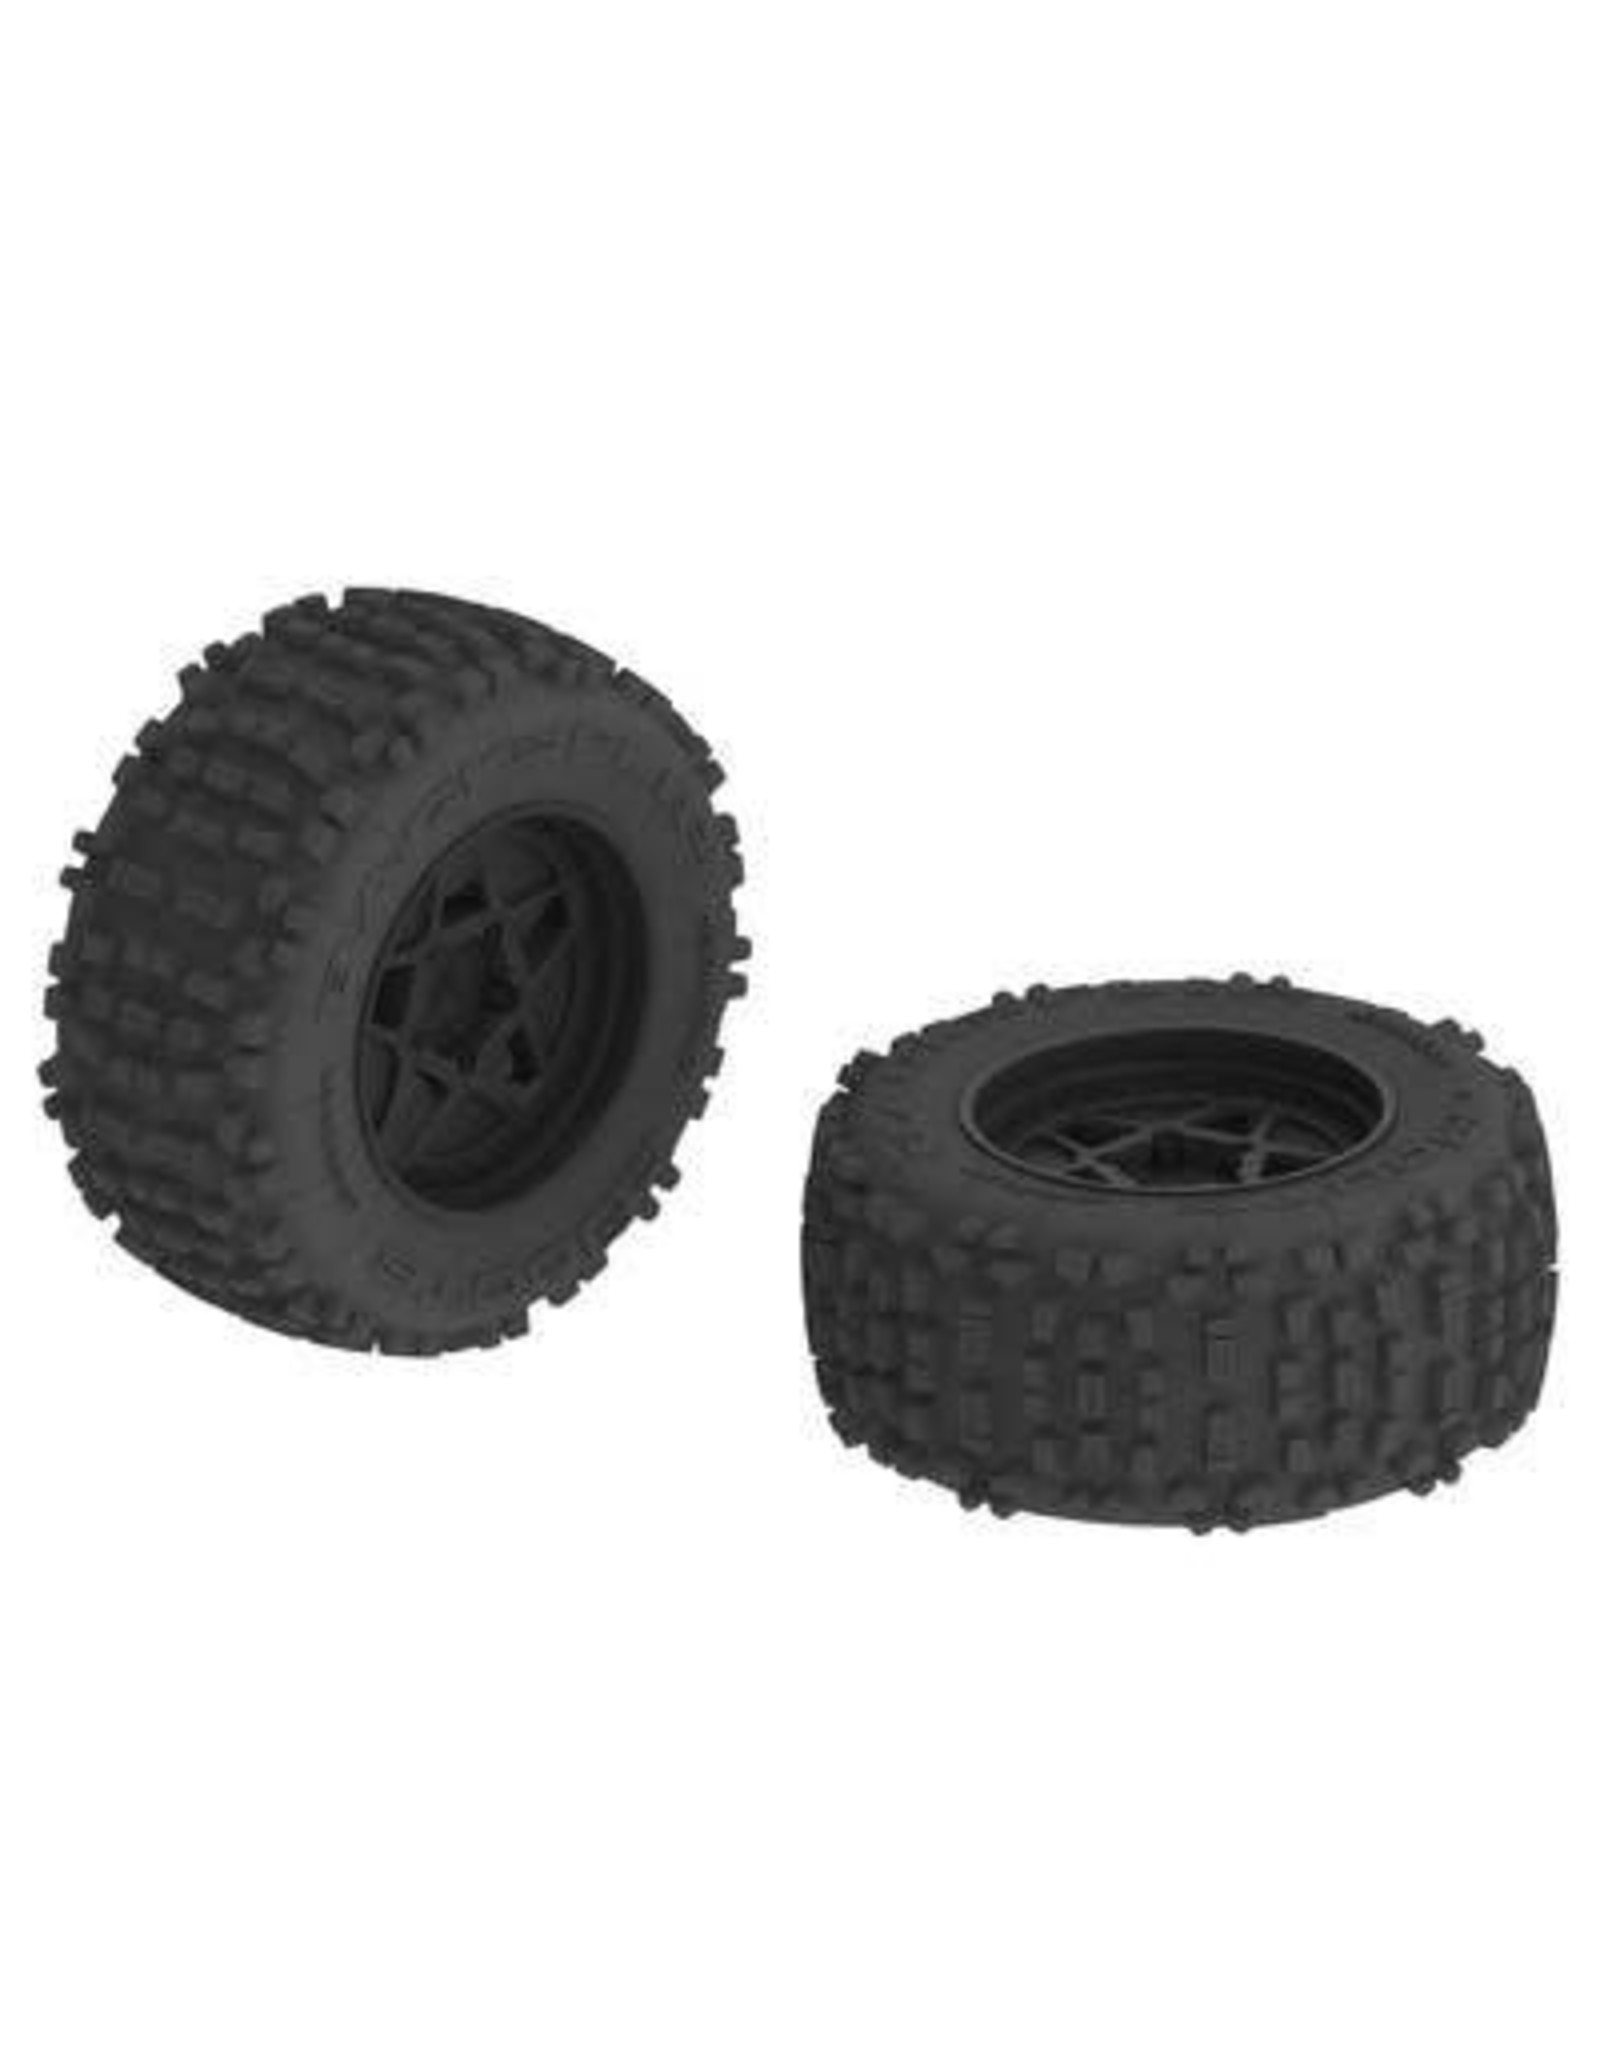 Arrma ARRMA dBoots Backflip MT 6S Tire Wheel Set  (AR510092)